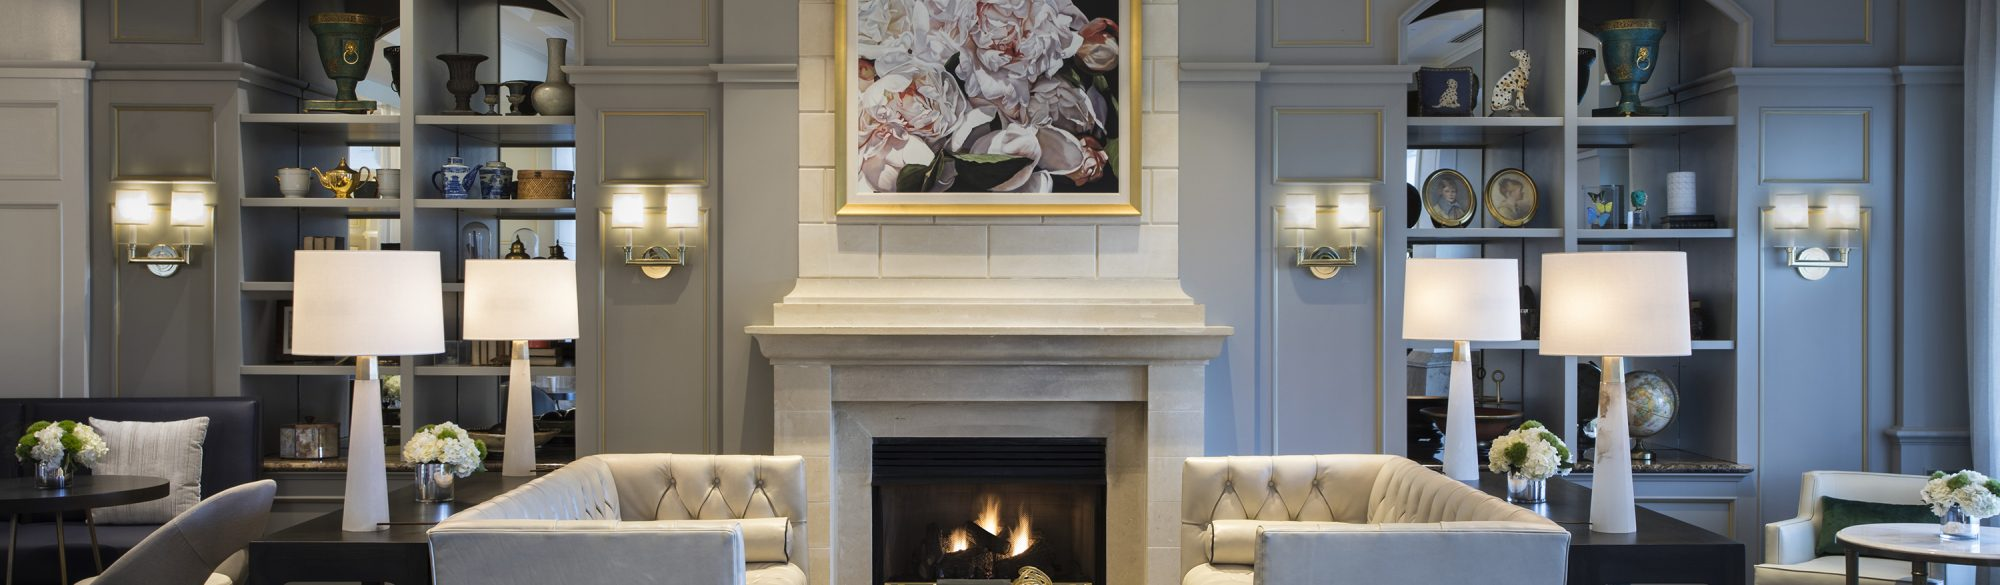 The Lobby Fireplace at The Ballantyne, Charlotte